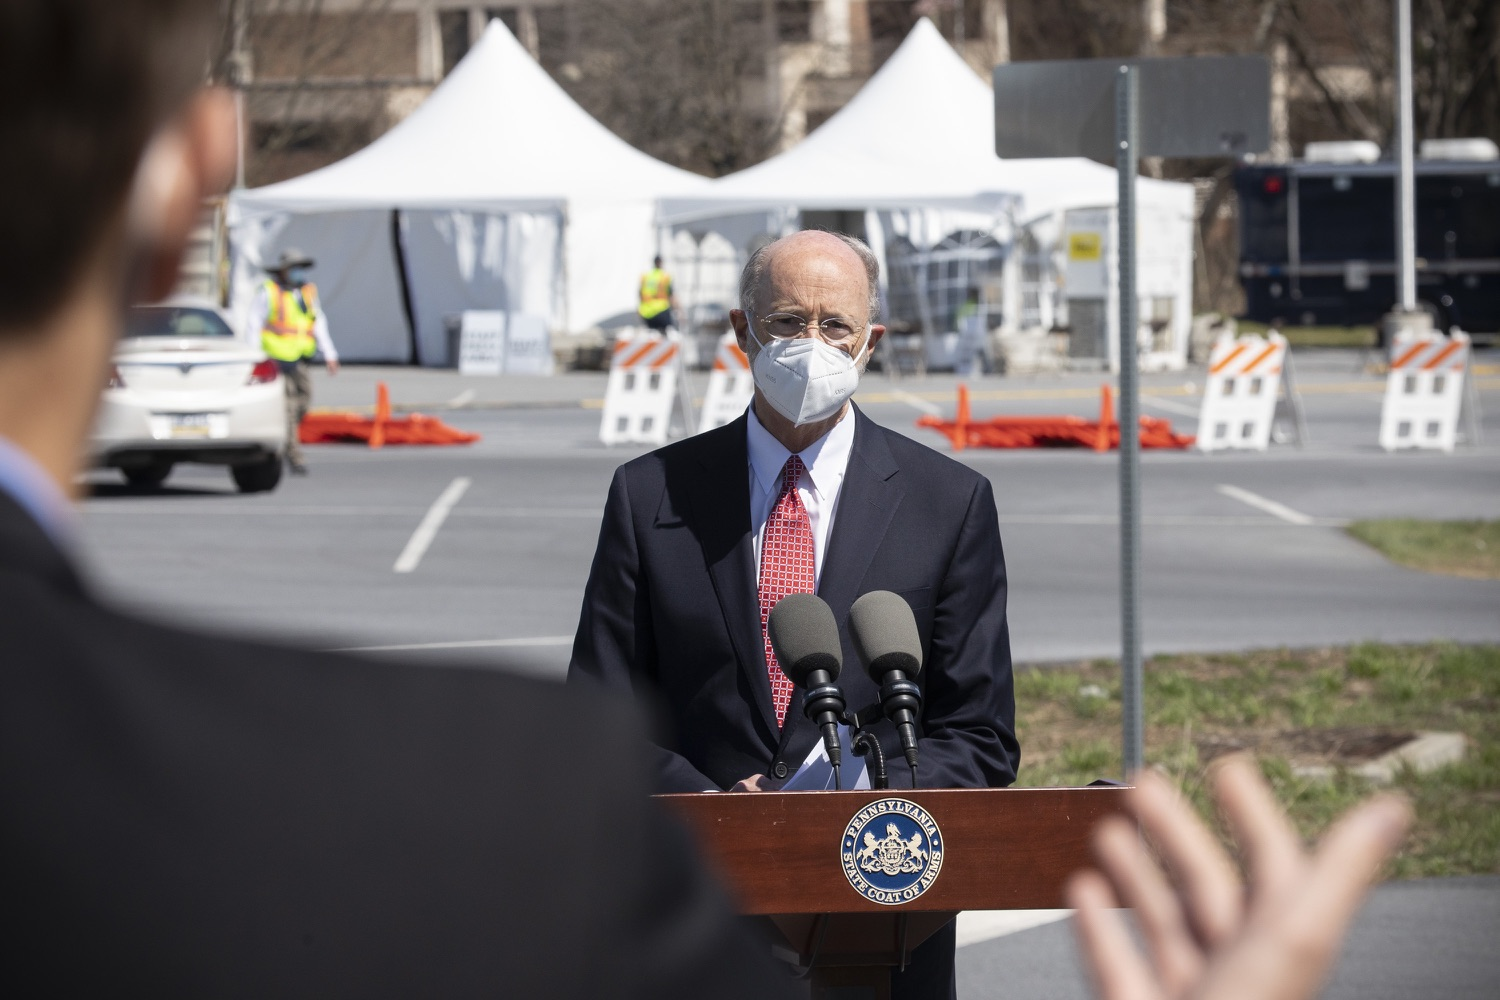 """<a href=""""https://filesource.wostreaming.net/commonwealthofpa/photo/18631_gov_hacc_vaccine_dz_010.jpg"""" target=""""_blank"""">⇣Download Photo<br></a>Pennsylvania Governor Tom Wolf speaking with the press.  Governor Wolf today visited the COVID-19 drive-thru mass vaccination clinic for Dauphin County residents at Harrisburg Area Community College. The drive-thru clinic was developed in partnership with UPMC Pinnacle and Dauphin County. He was joined by UPMC Pinnacle President Phil Guarneschelli and Dauphin County Commissioners Mike Pries and George P. Hartwick III.  HARRISBURG, PA -- March 30, 2021"""